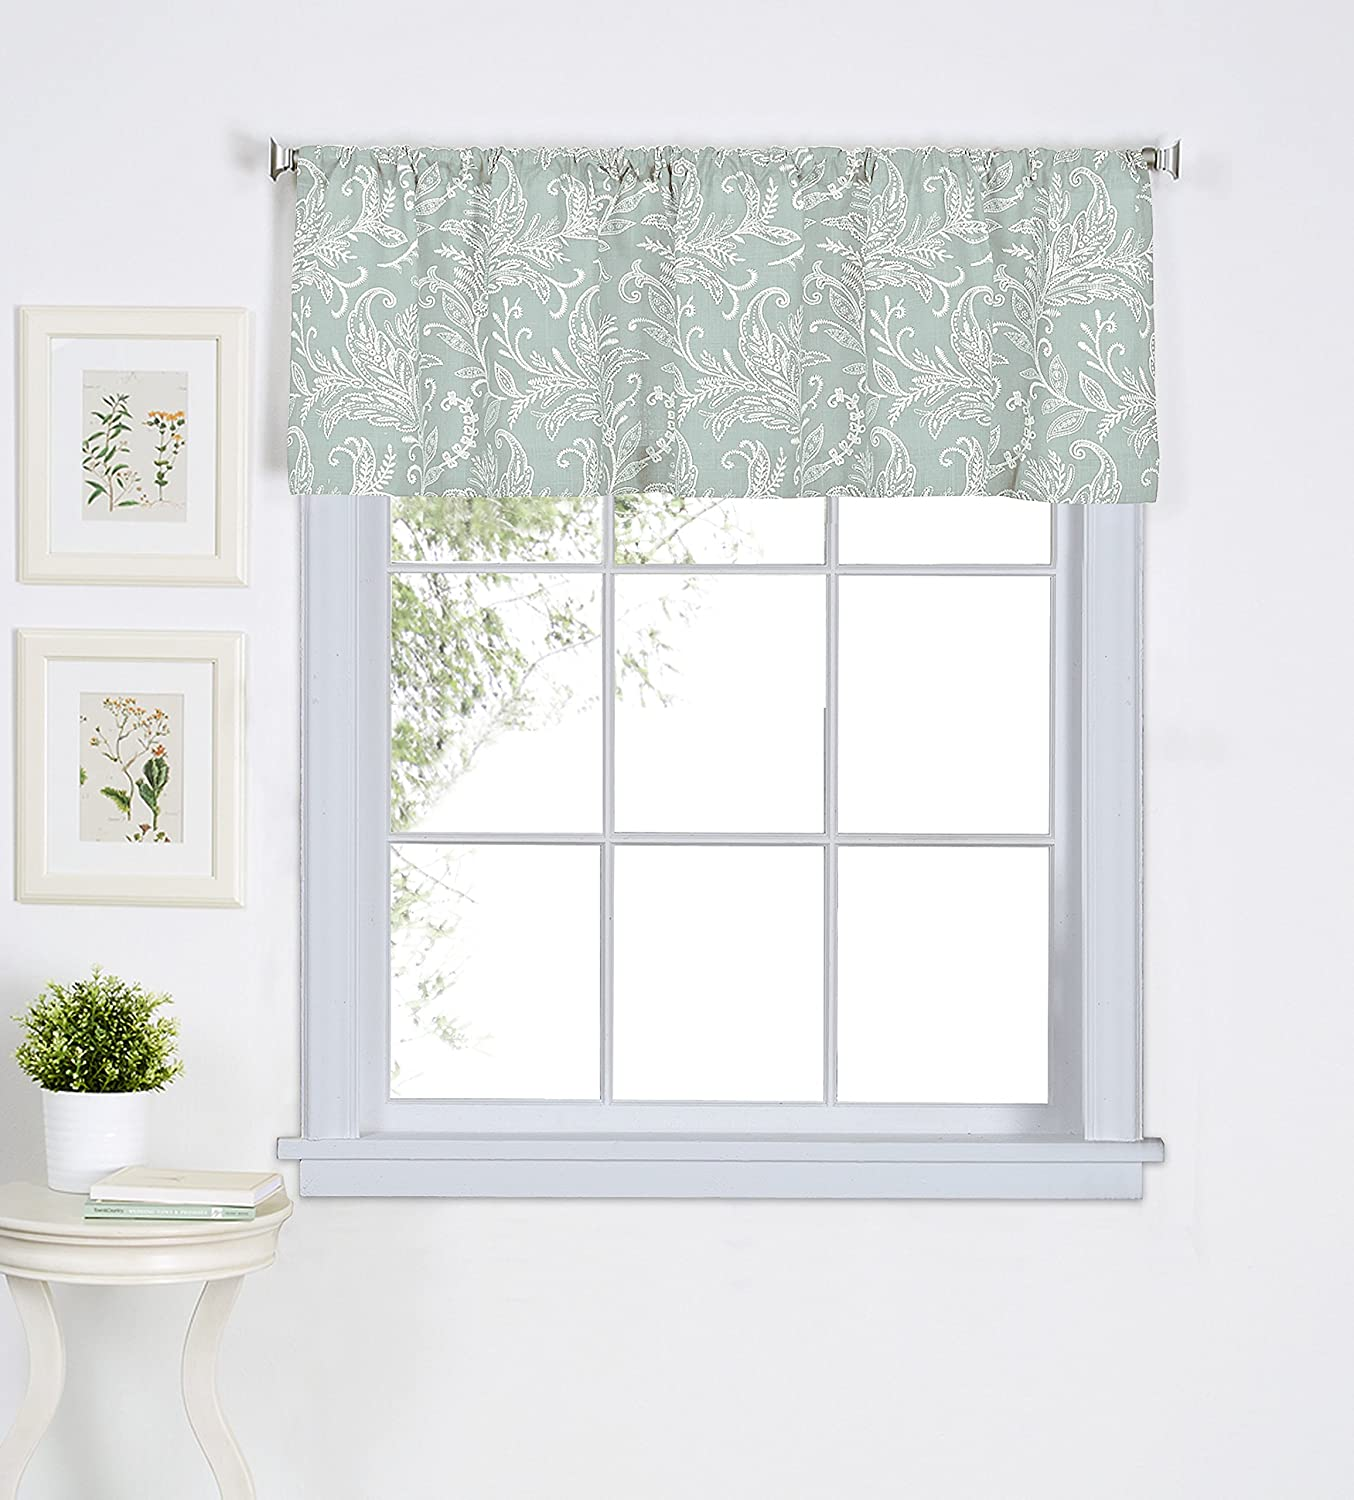 Elrene Home Fashions 026865775754 Floral Rod Pocket Cafe/Kitchen Valance Window Curtain, 60